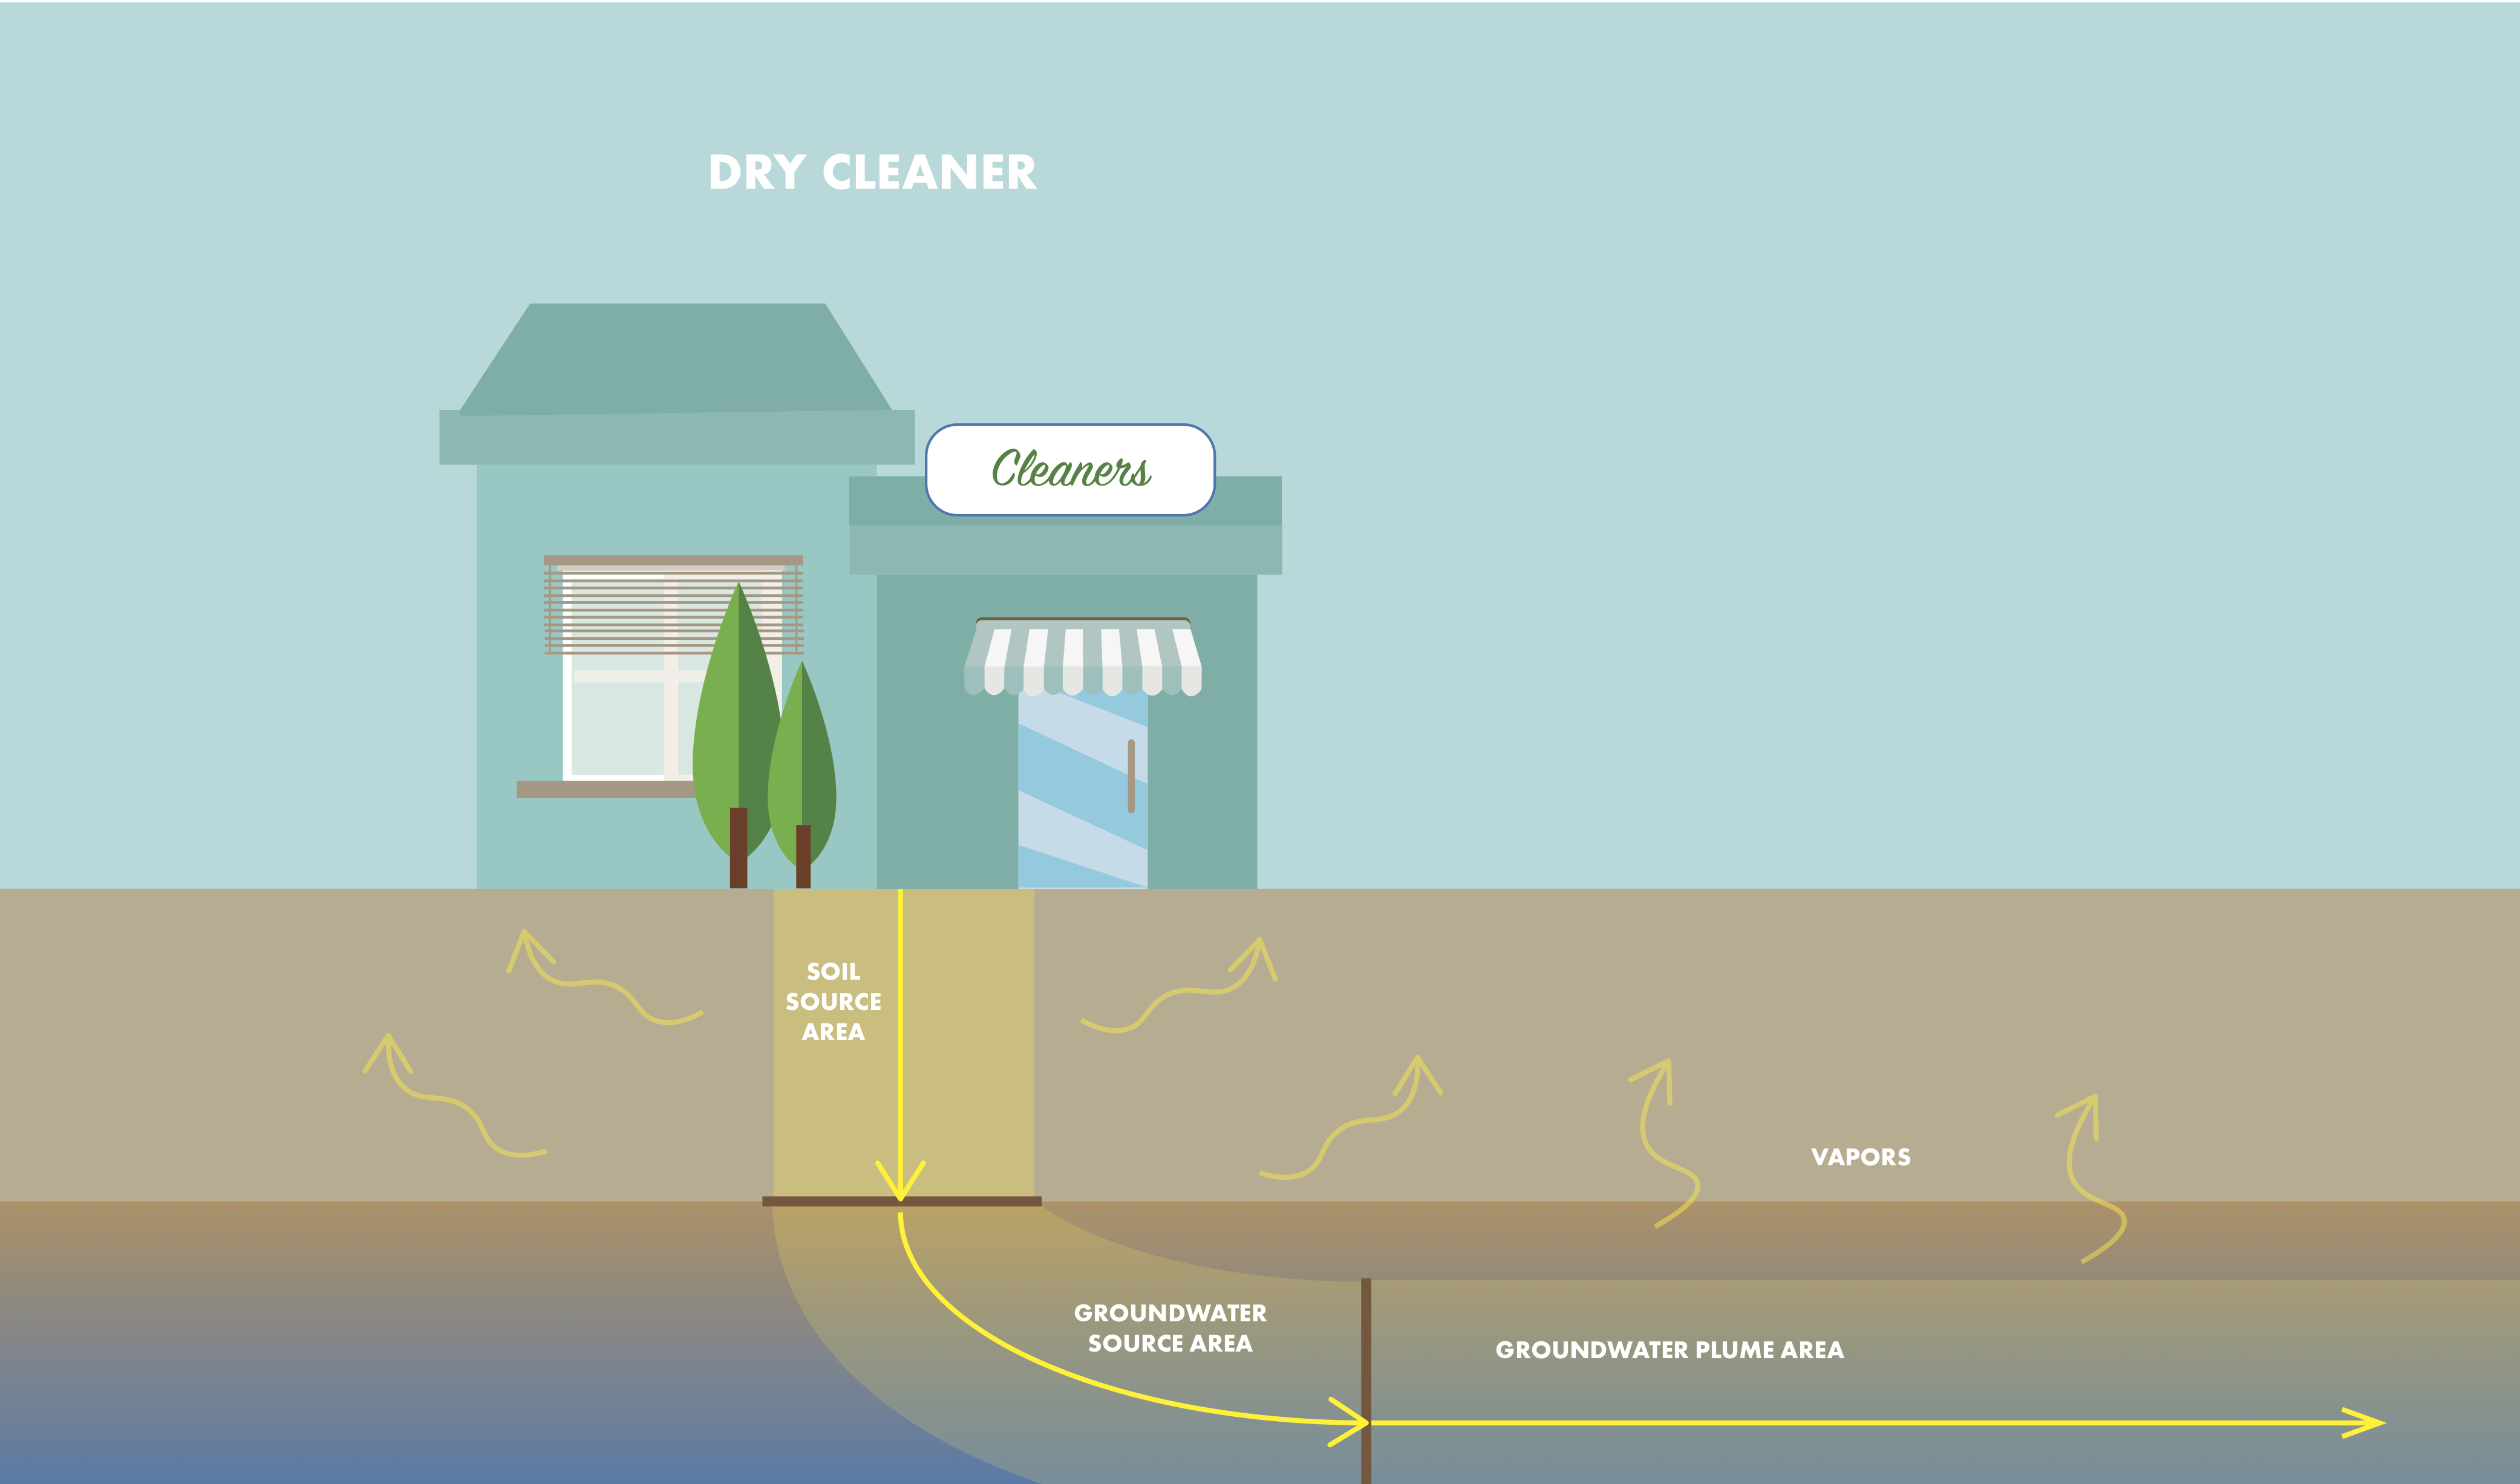 Infographic showing how drycleaning solvent can flow into soil and groundwater and all of the environmental issues that will need to be remediated